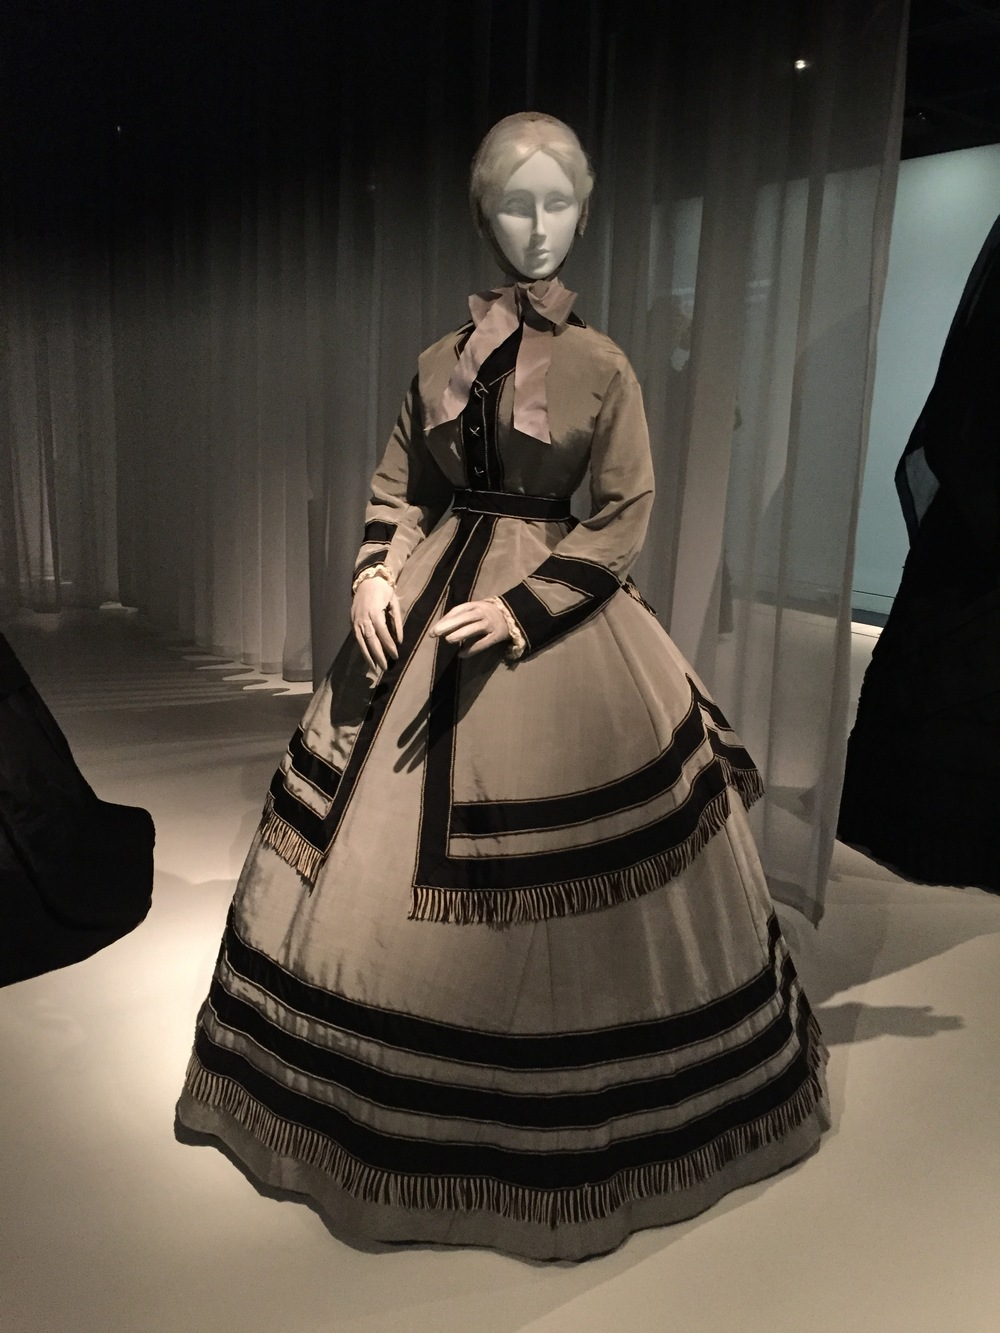 American wedding ensemble for a woman in mourning, ca. 1868